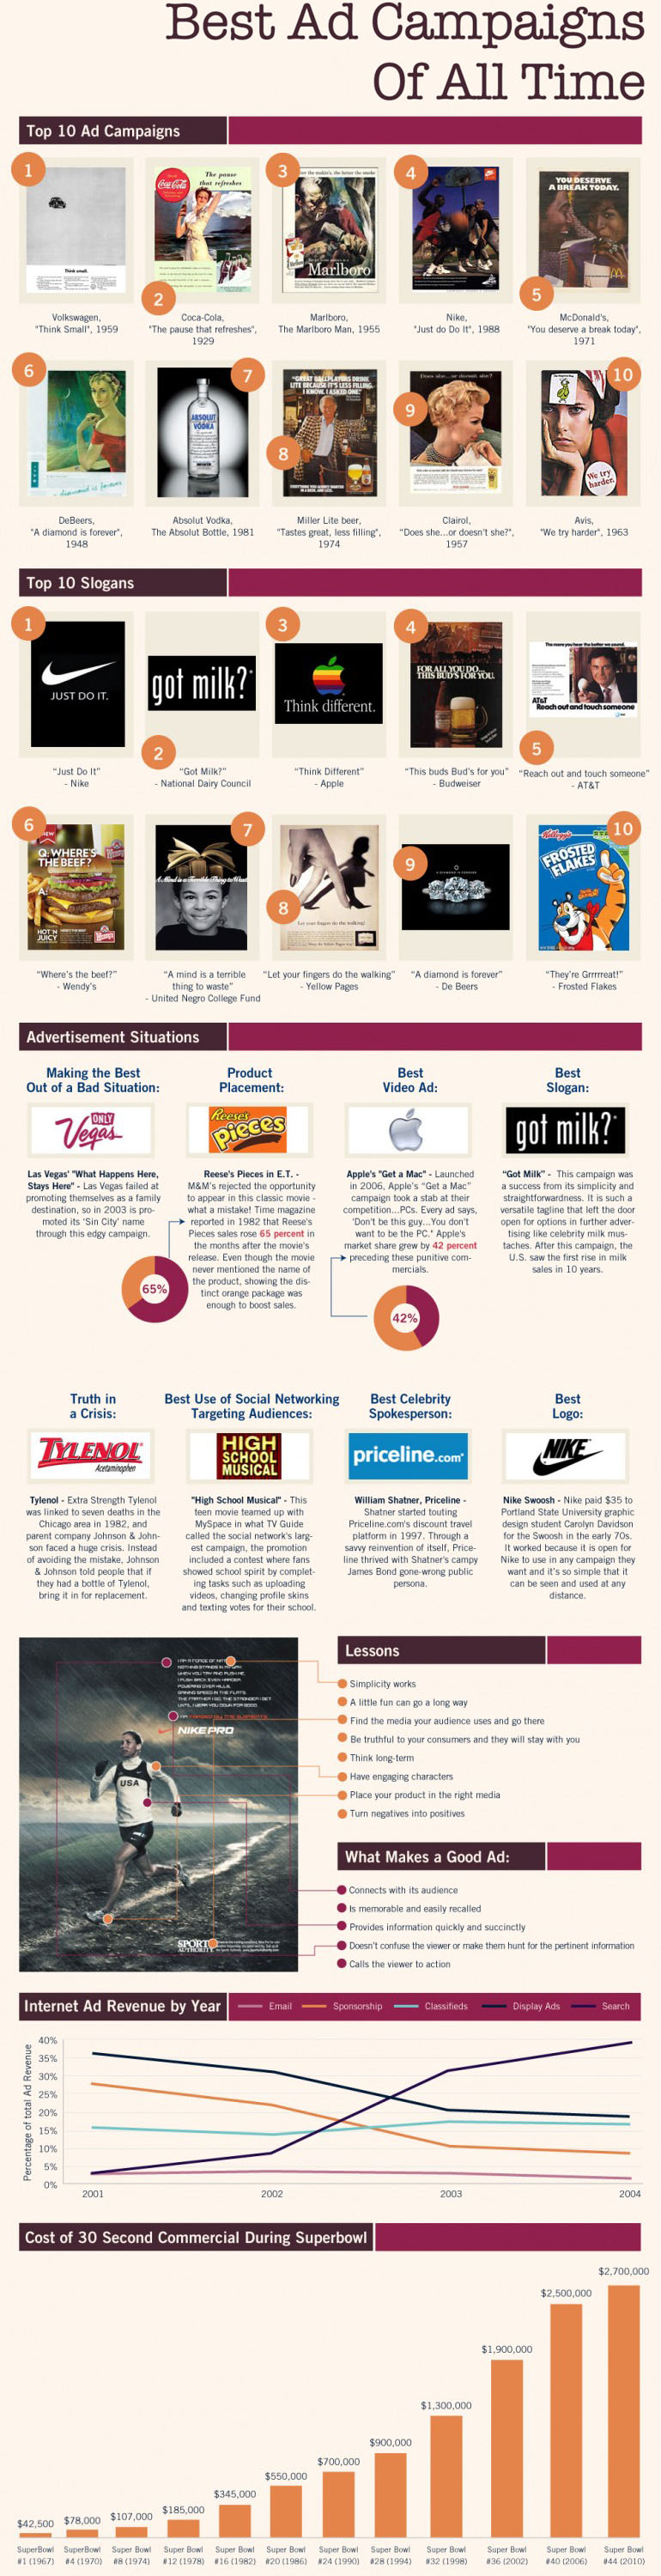 Best ad campaigns of all time infographic